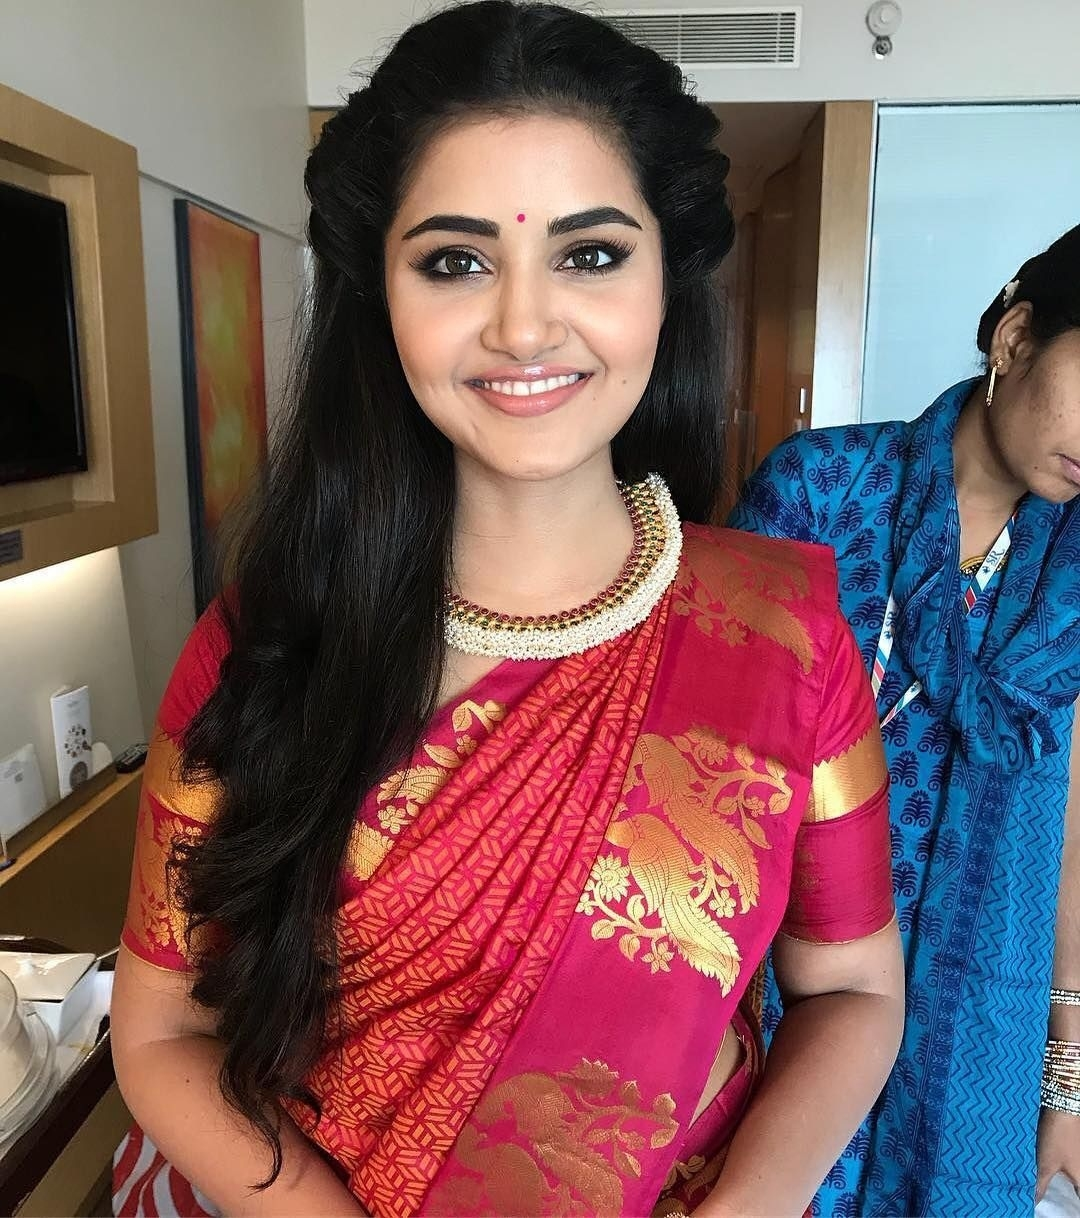 Top 10 South Indian Style Hairstyles For Round Faces pertaining to South Indian Bridal Hairstyle For Round Face